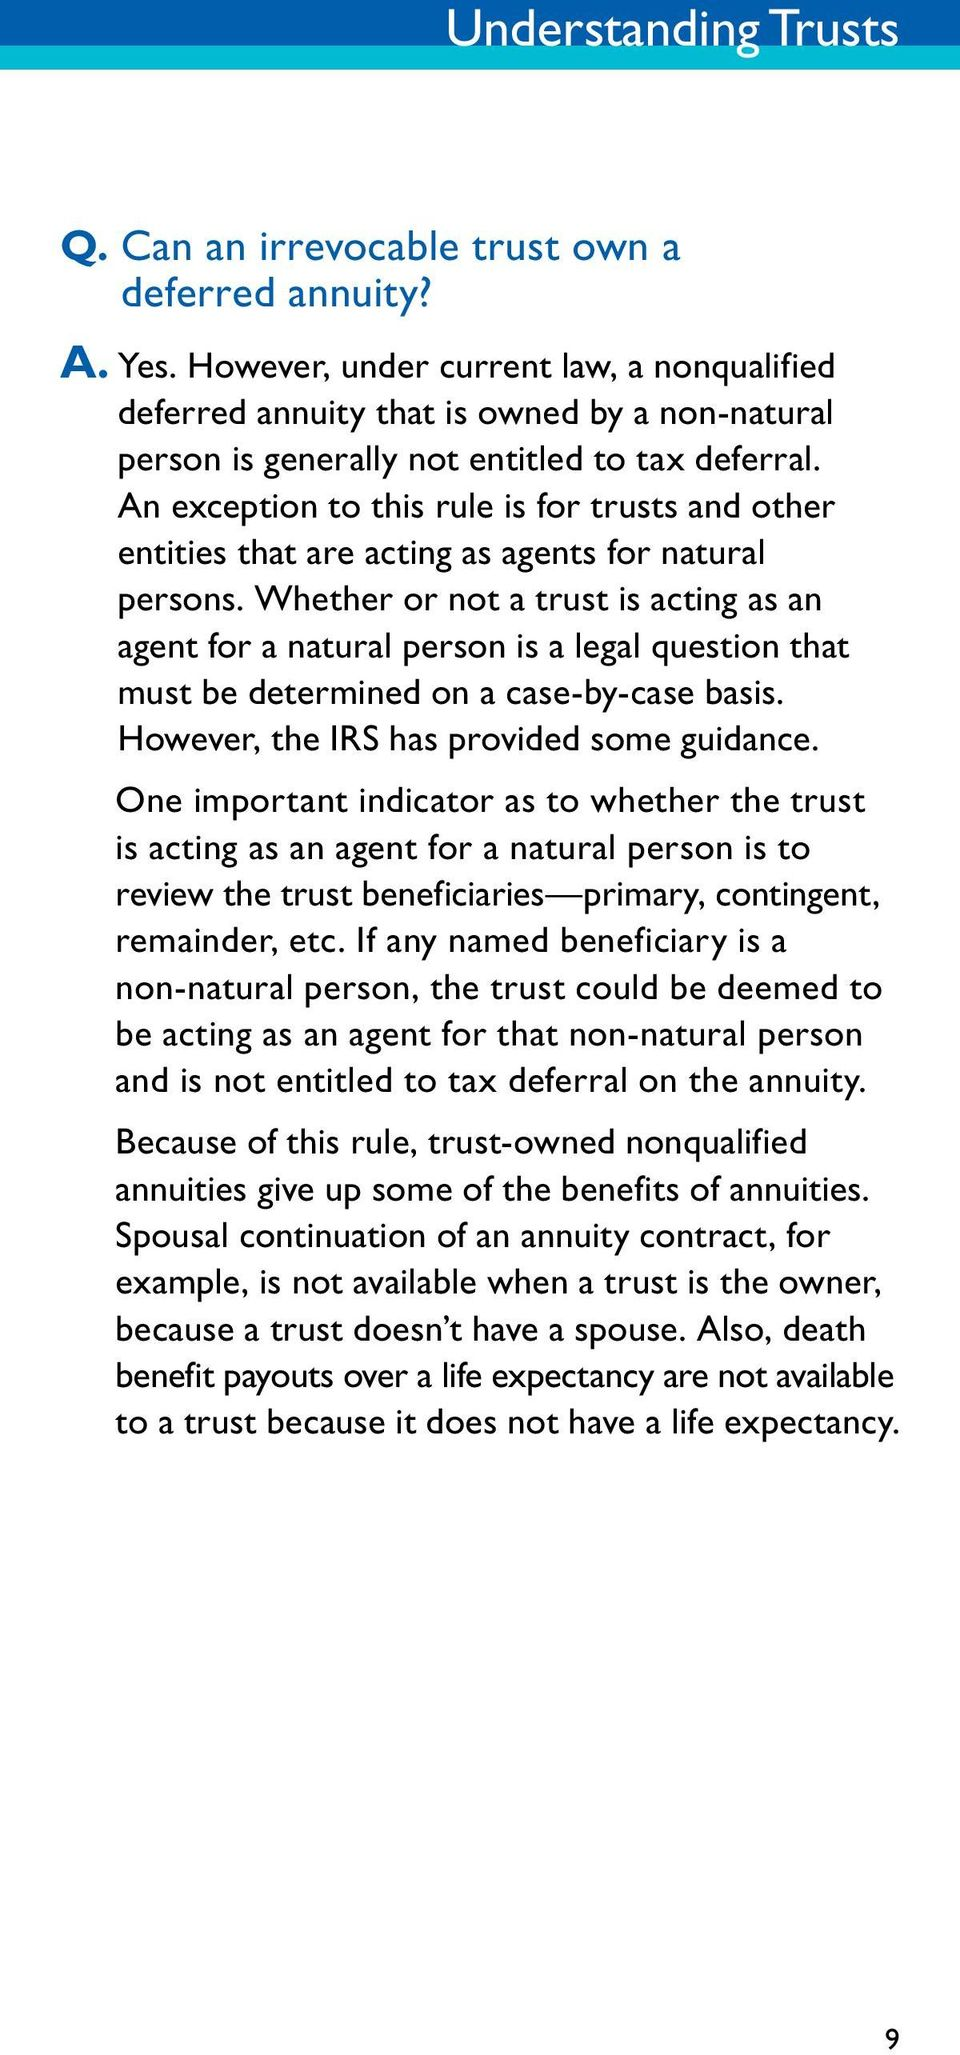 An exception to this rule is for trusts and other entities that are acting as agents for natural persons.